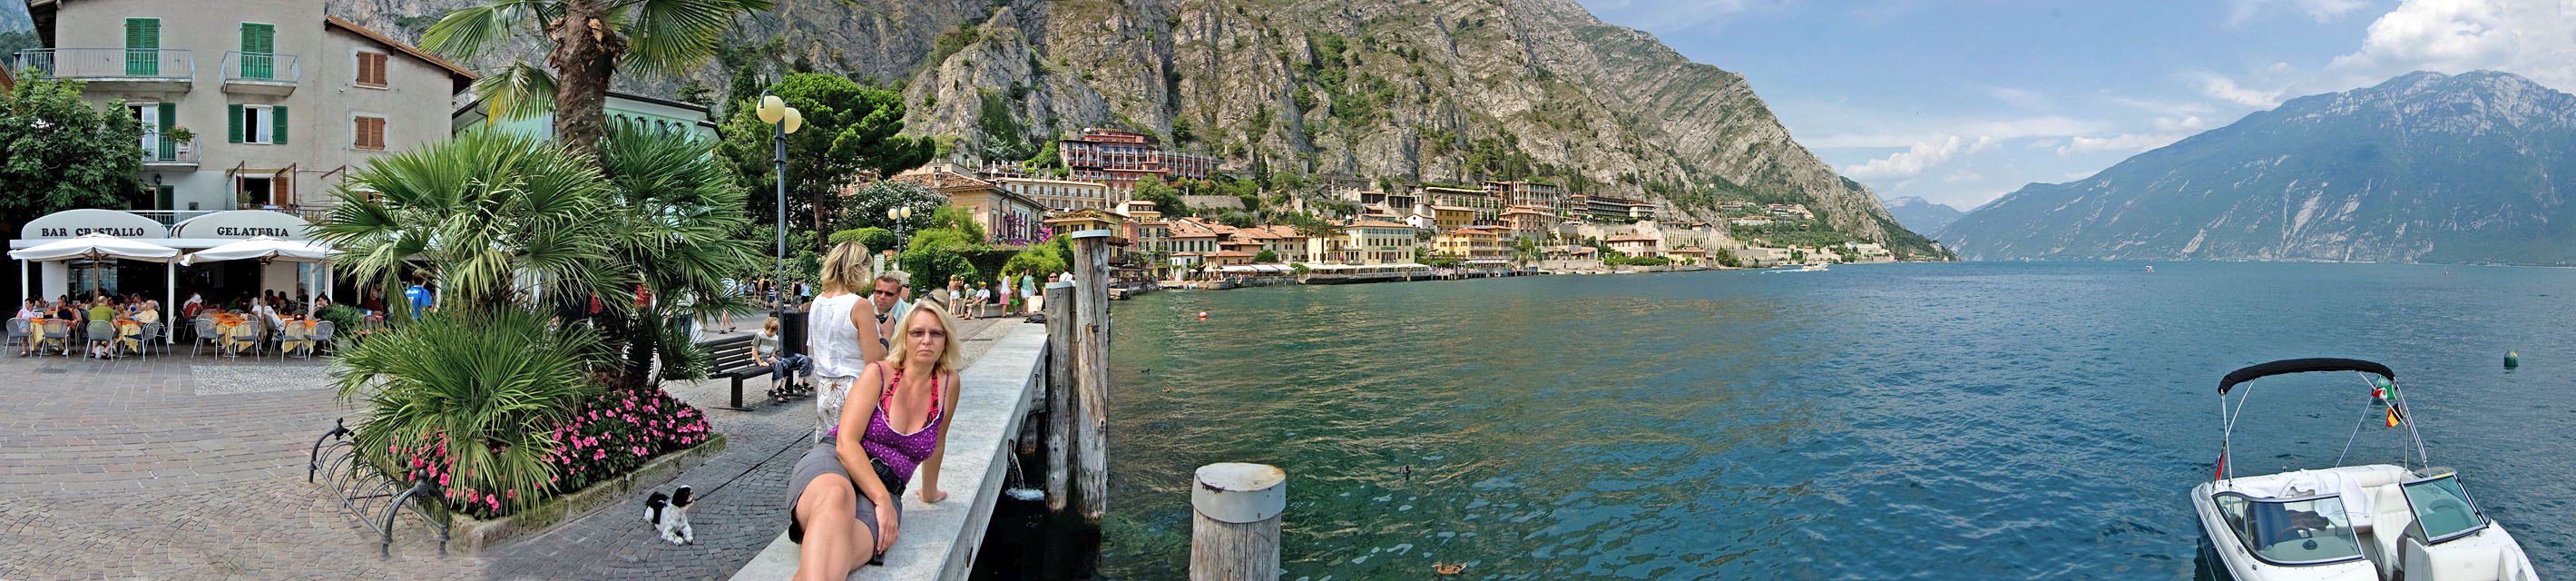 Panoramic view of Limone